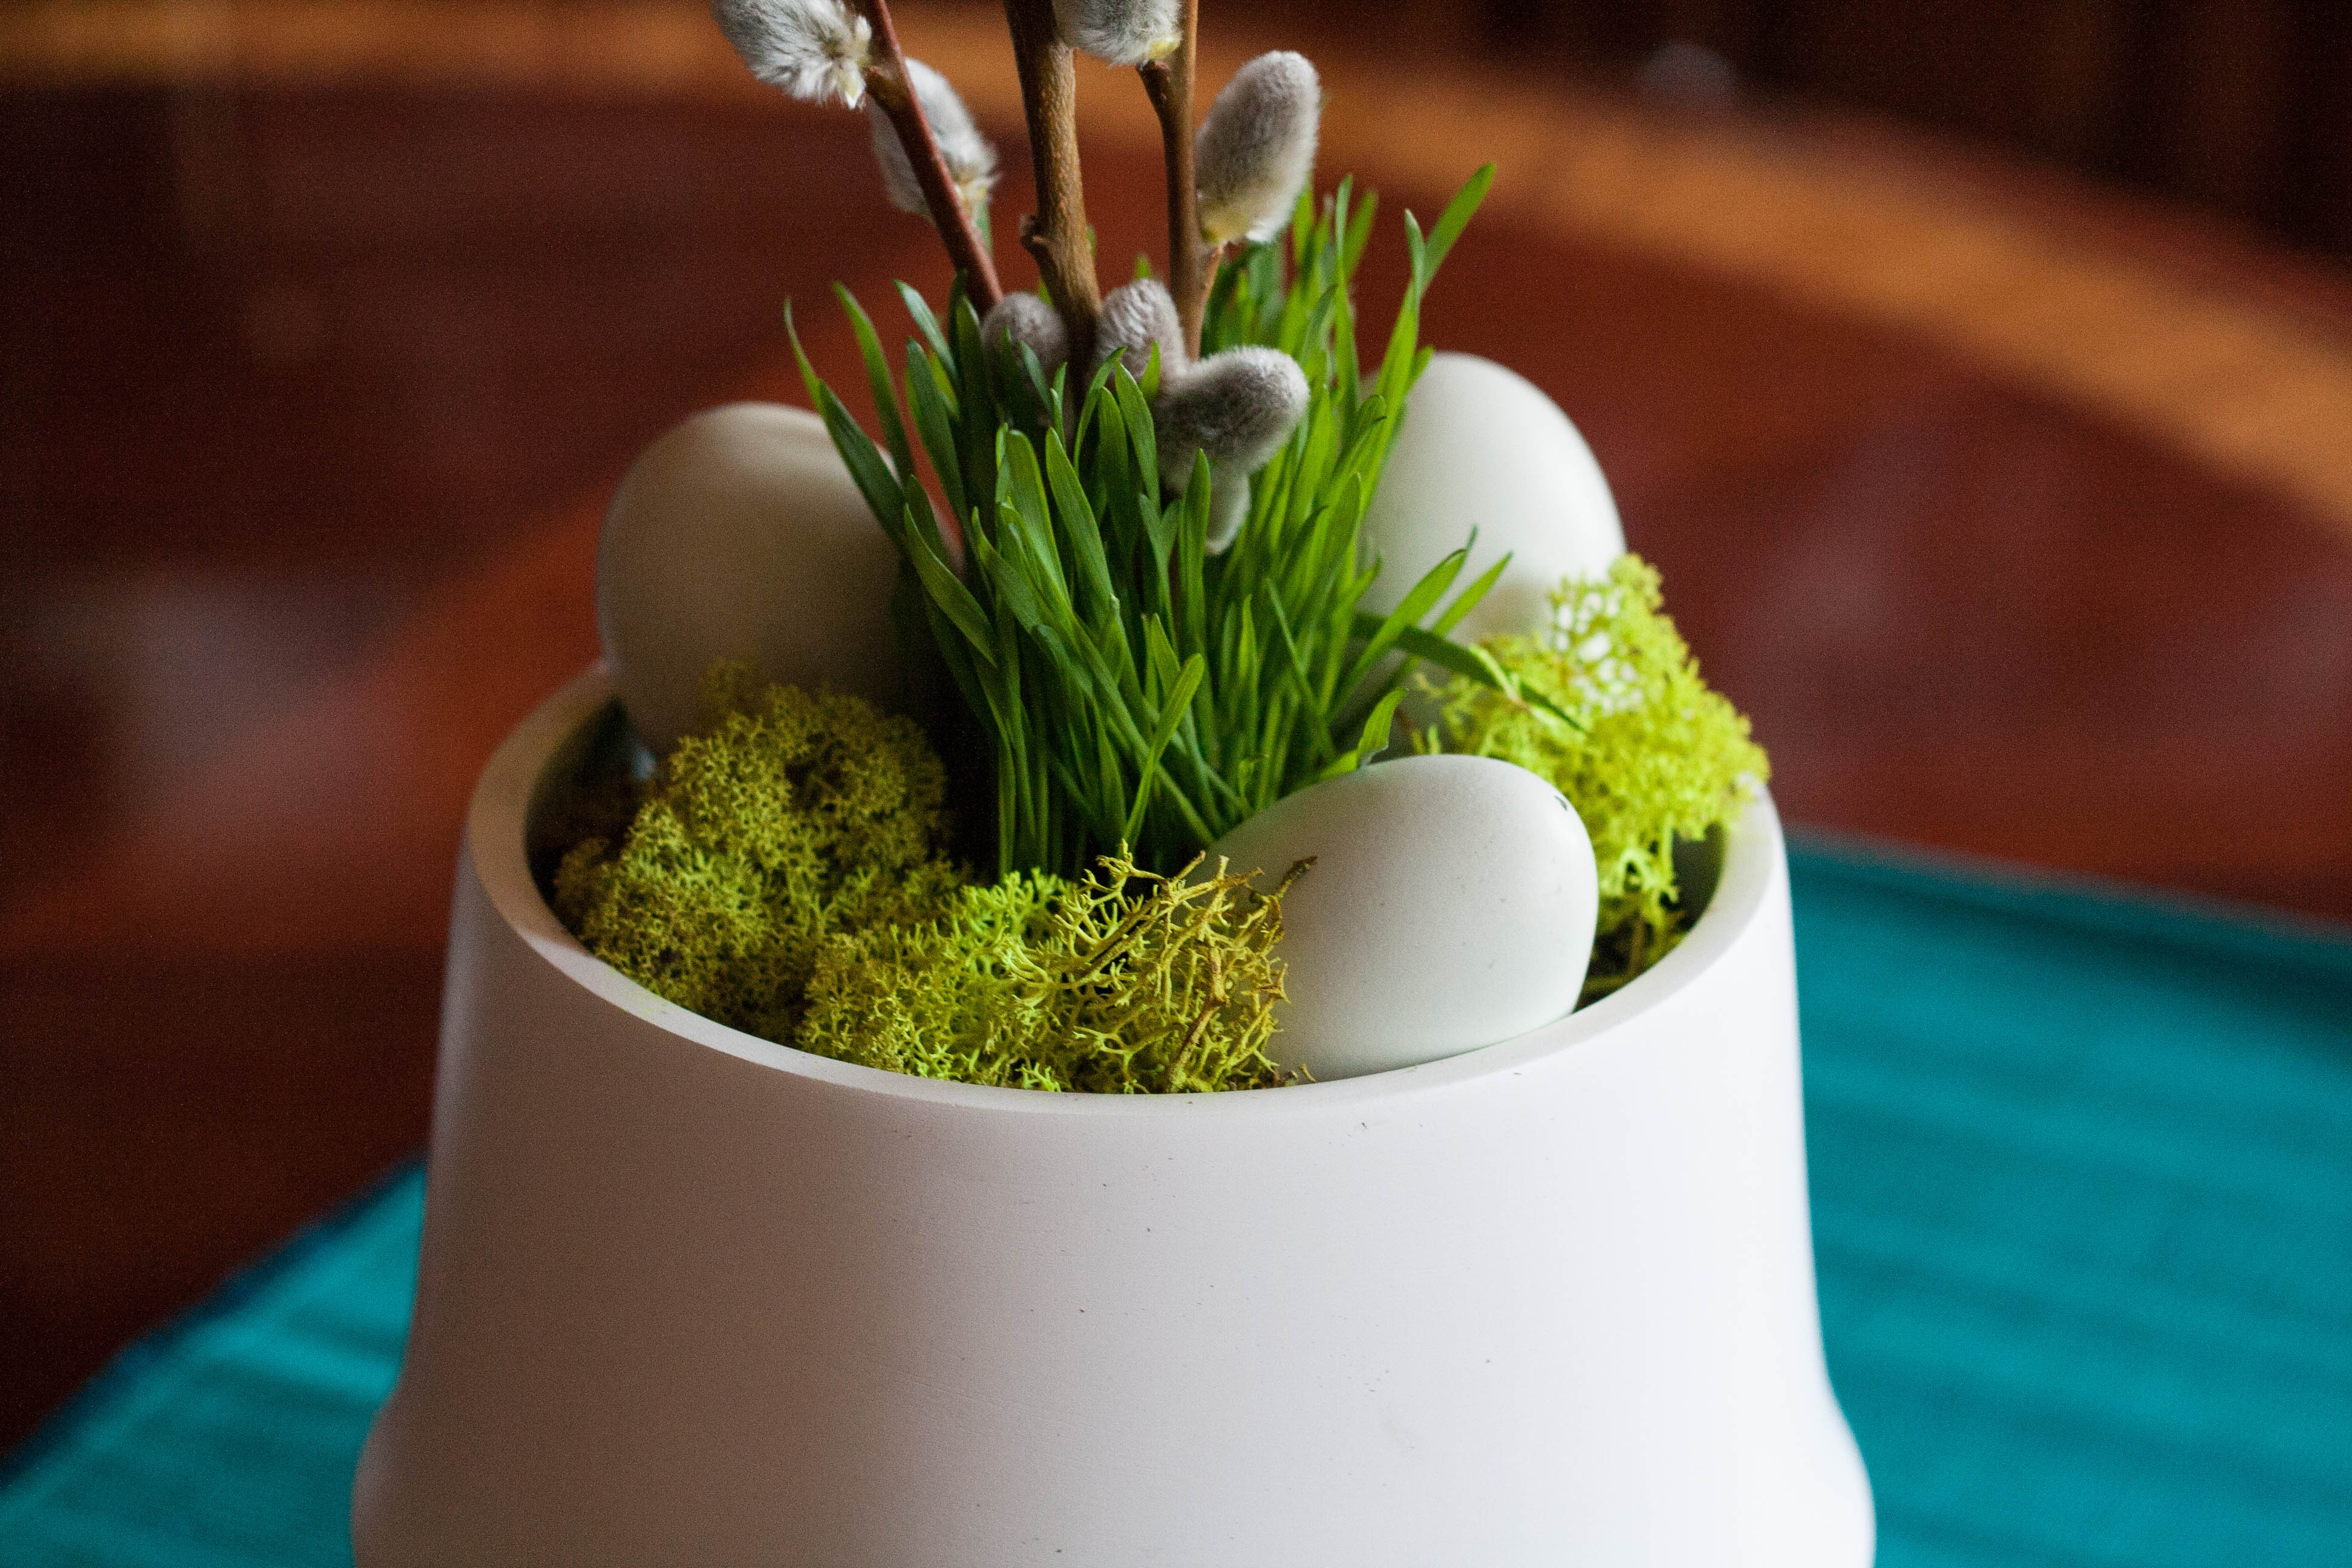 assembling-easter-decorations-large-planter-close-up_01